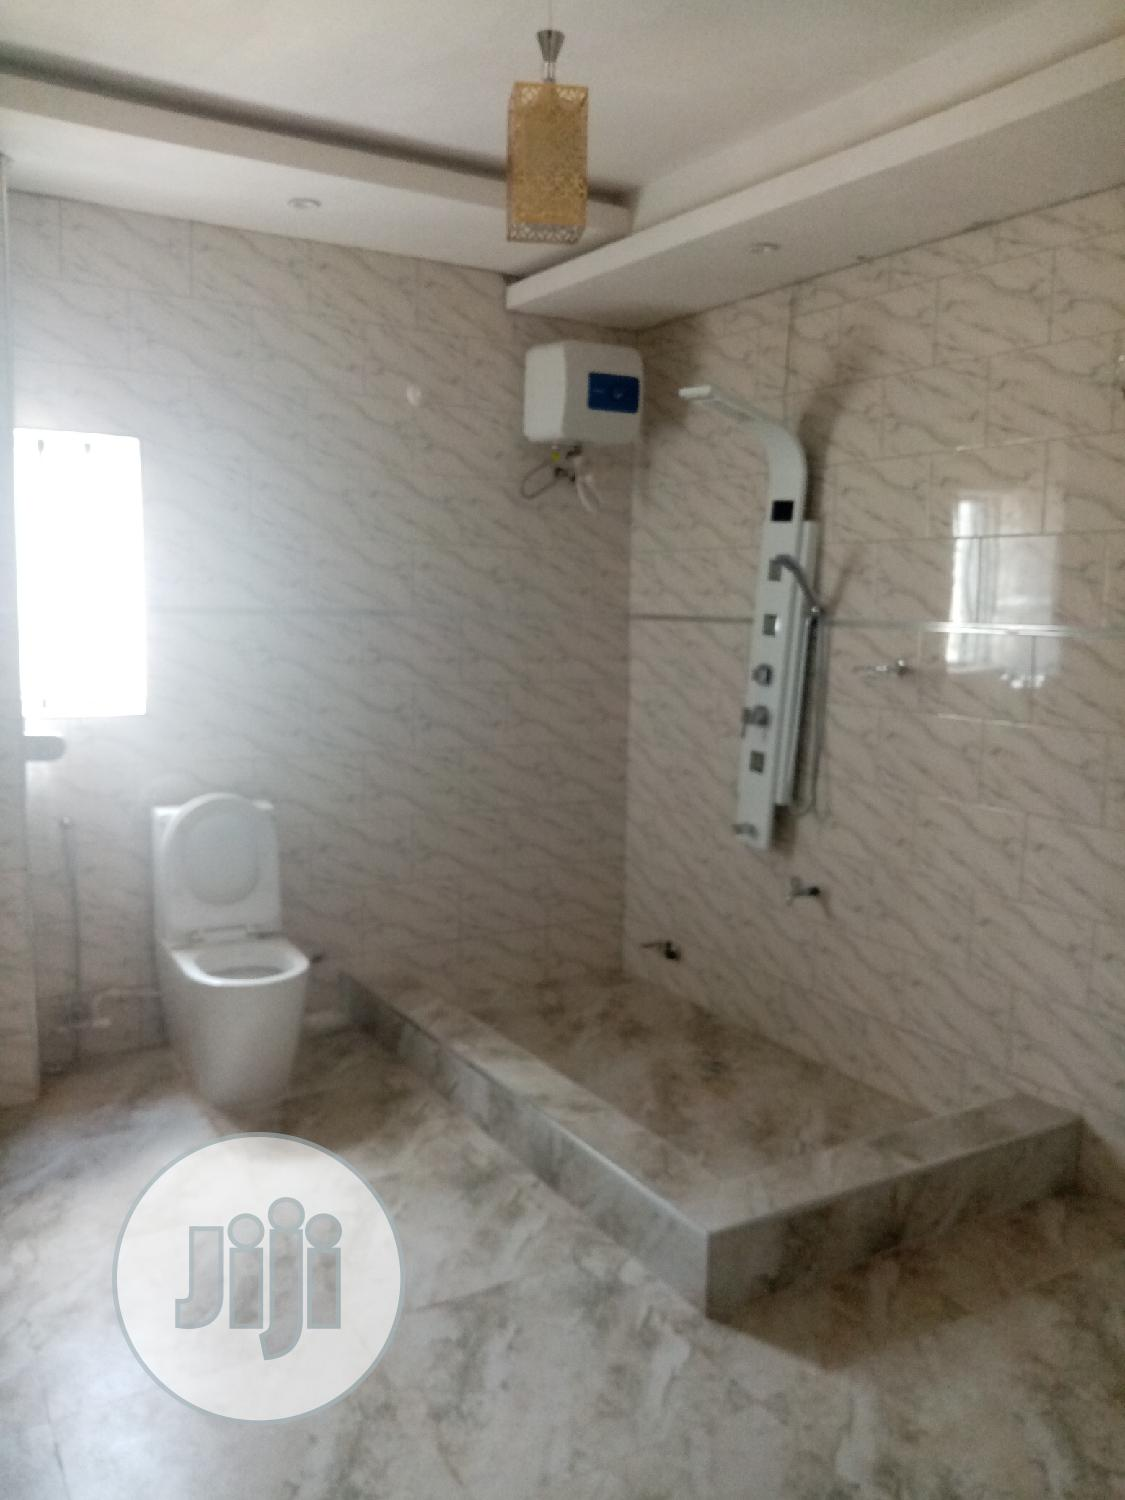 6 Bedrooms Duplex for Sale Oshimili South | Houses & Apartments For Sale for sale in Oshimili South, Delta State, Nigeria